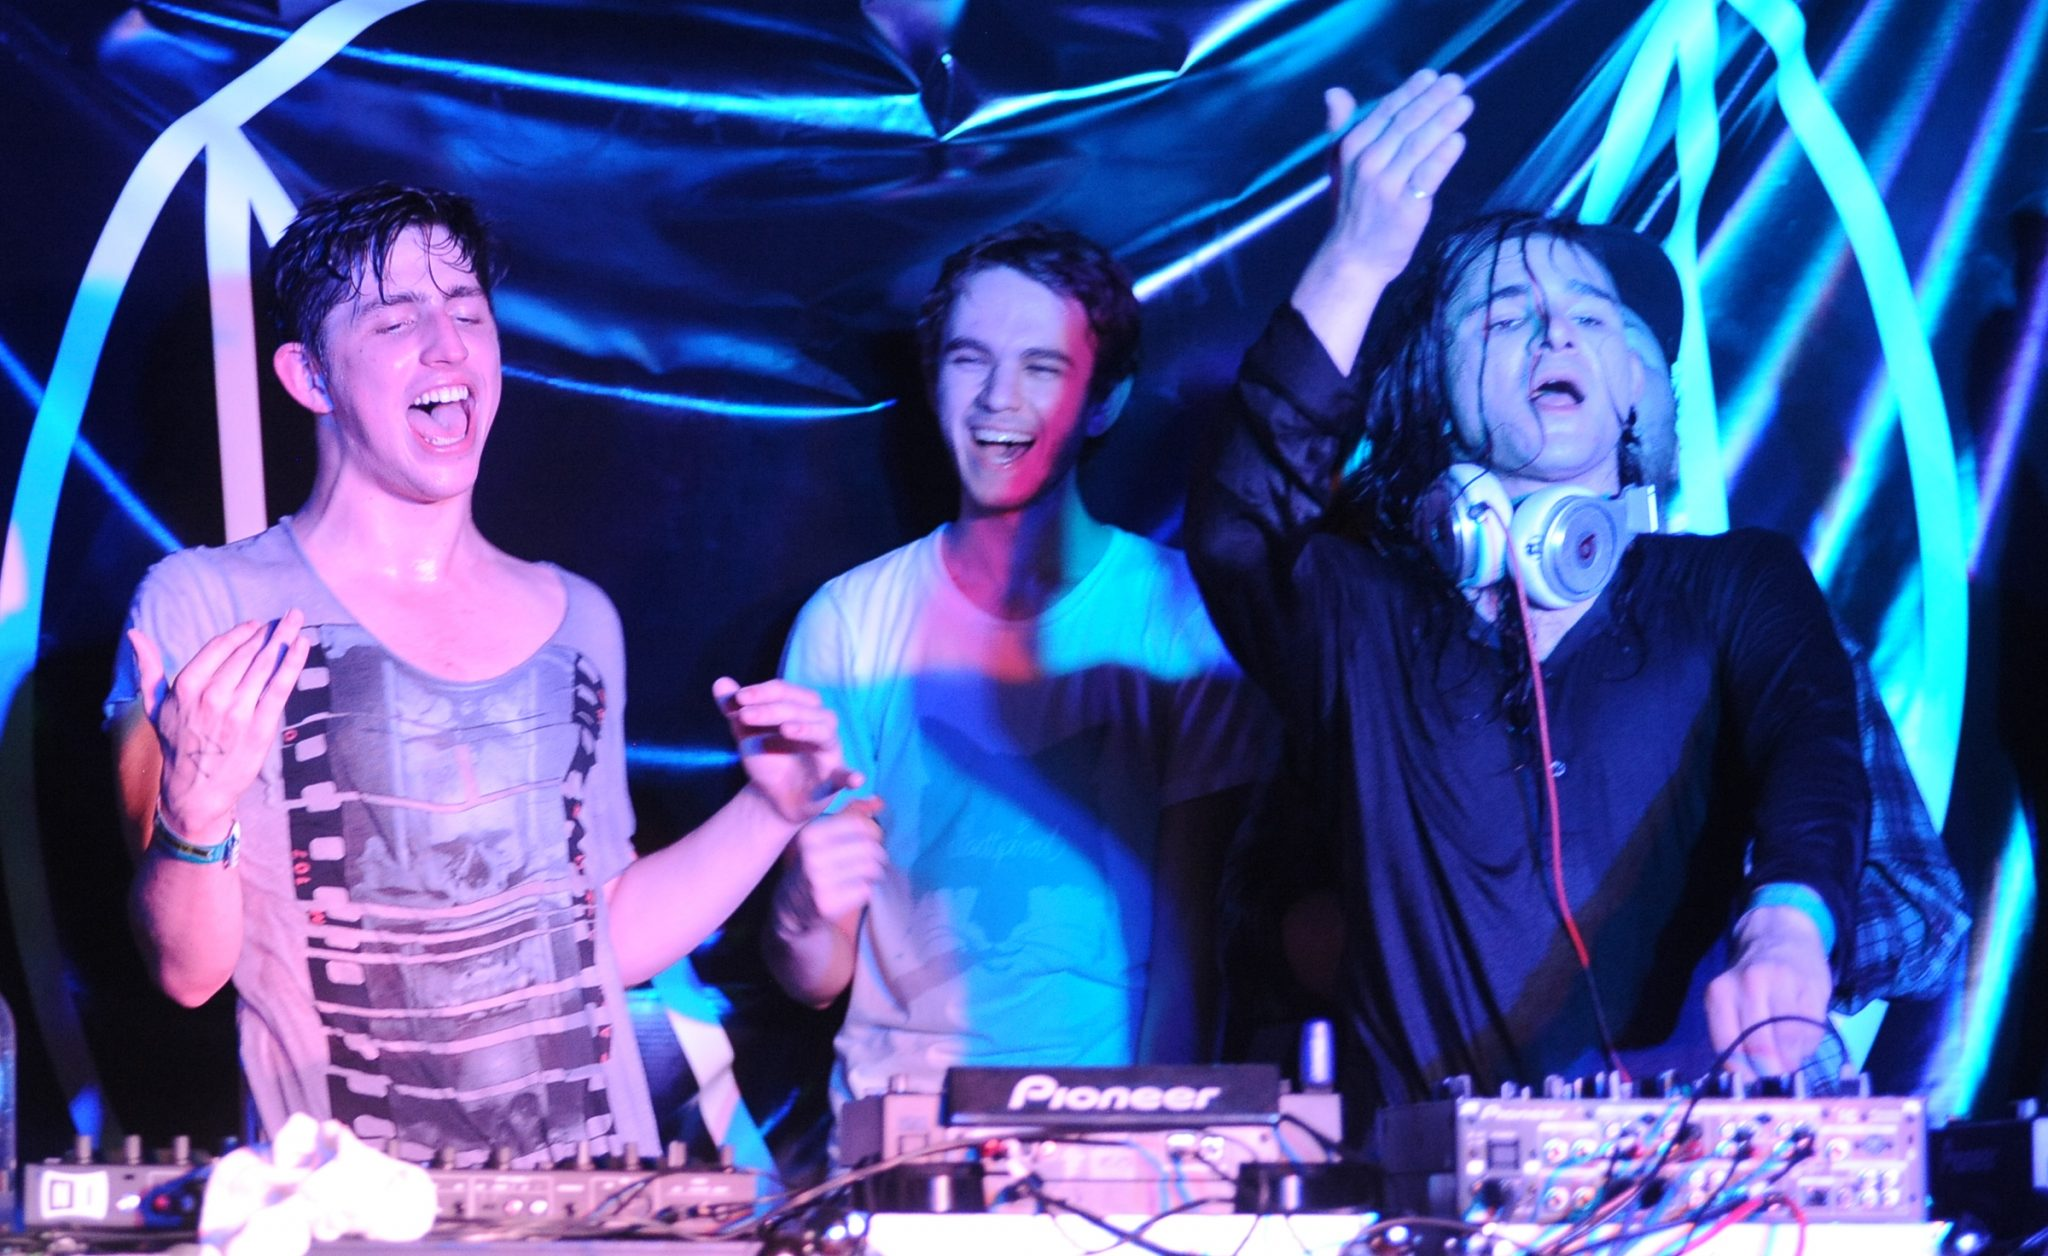 Porter_Robinson,_Zedd,_and_Skrillex_at_the_2012_SXSW_cropped